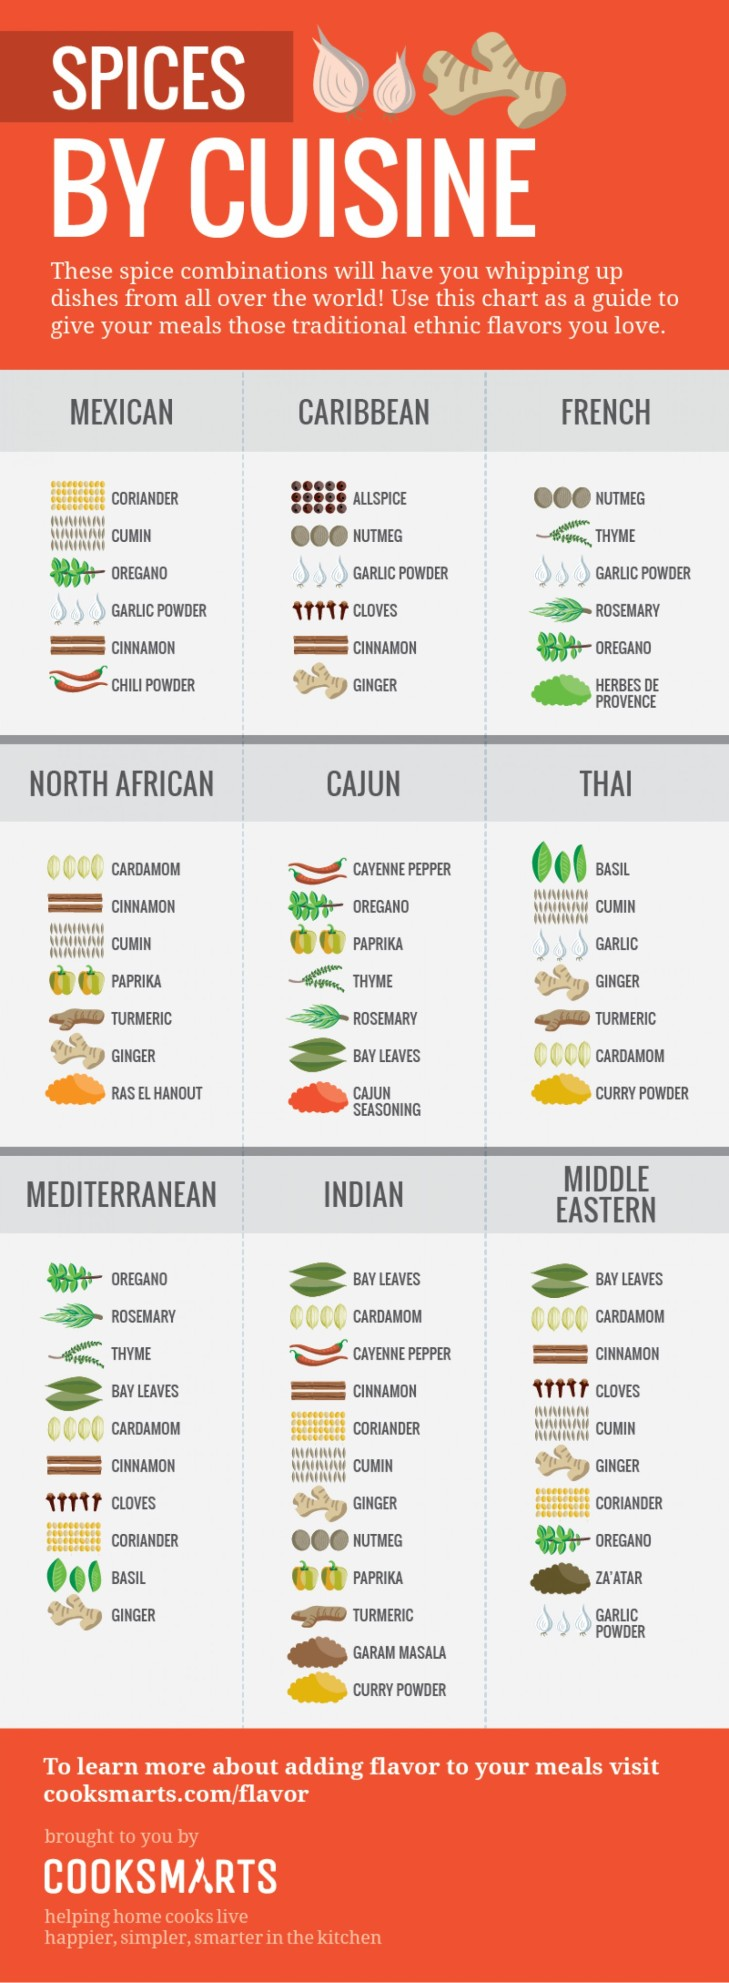 spices-by-cuisine-vertical_543410ad945b5_w1500.png